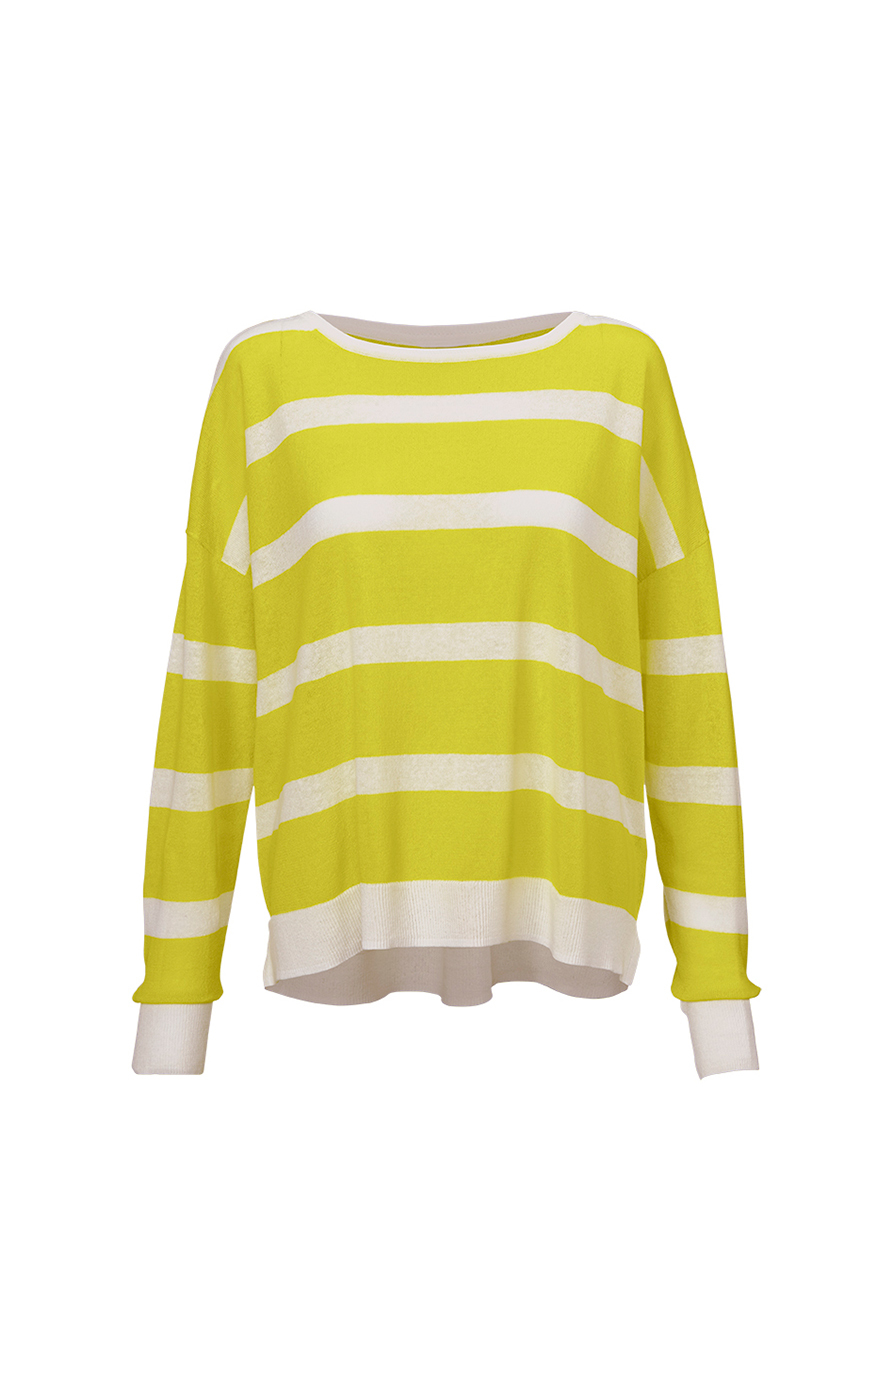 cabi's Happy Hour Pullover